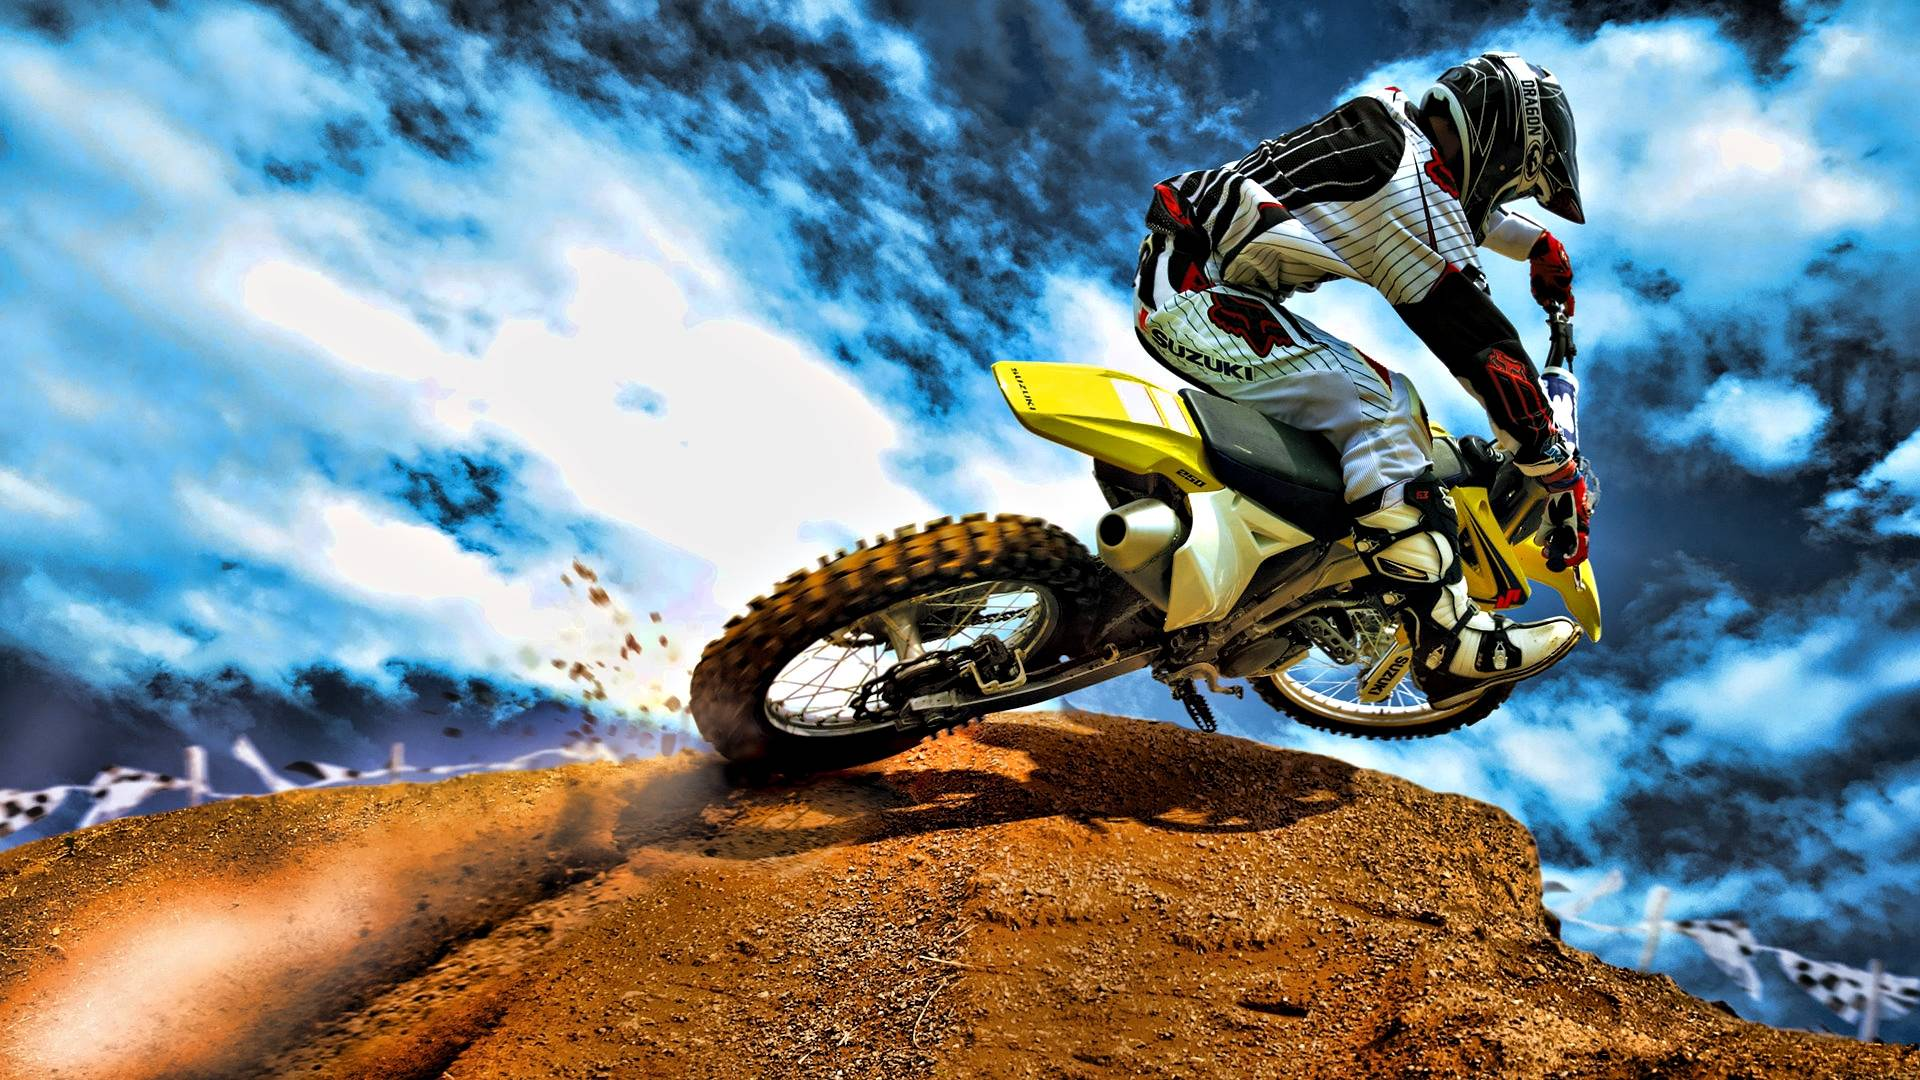 wallpapers hd motos - photo #27